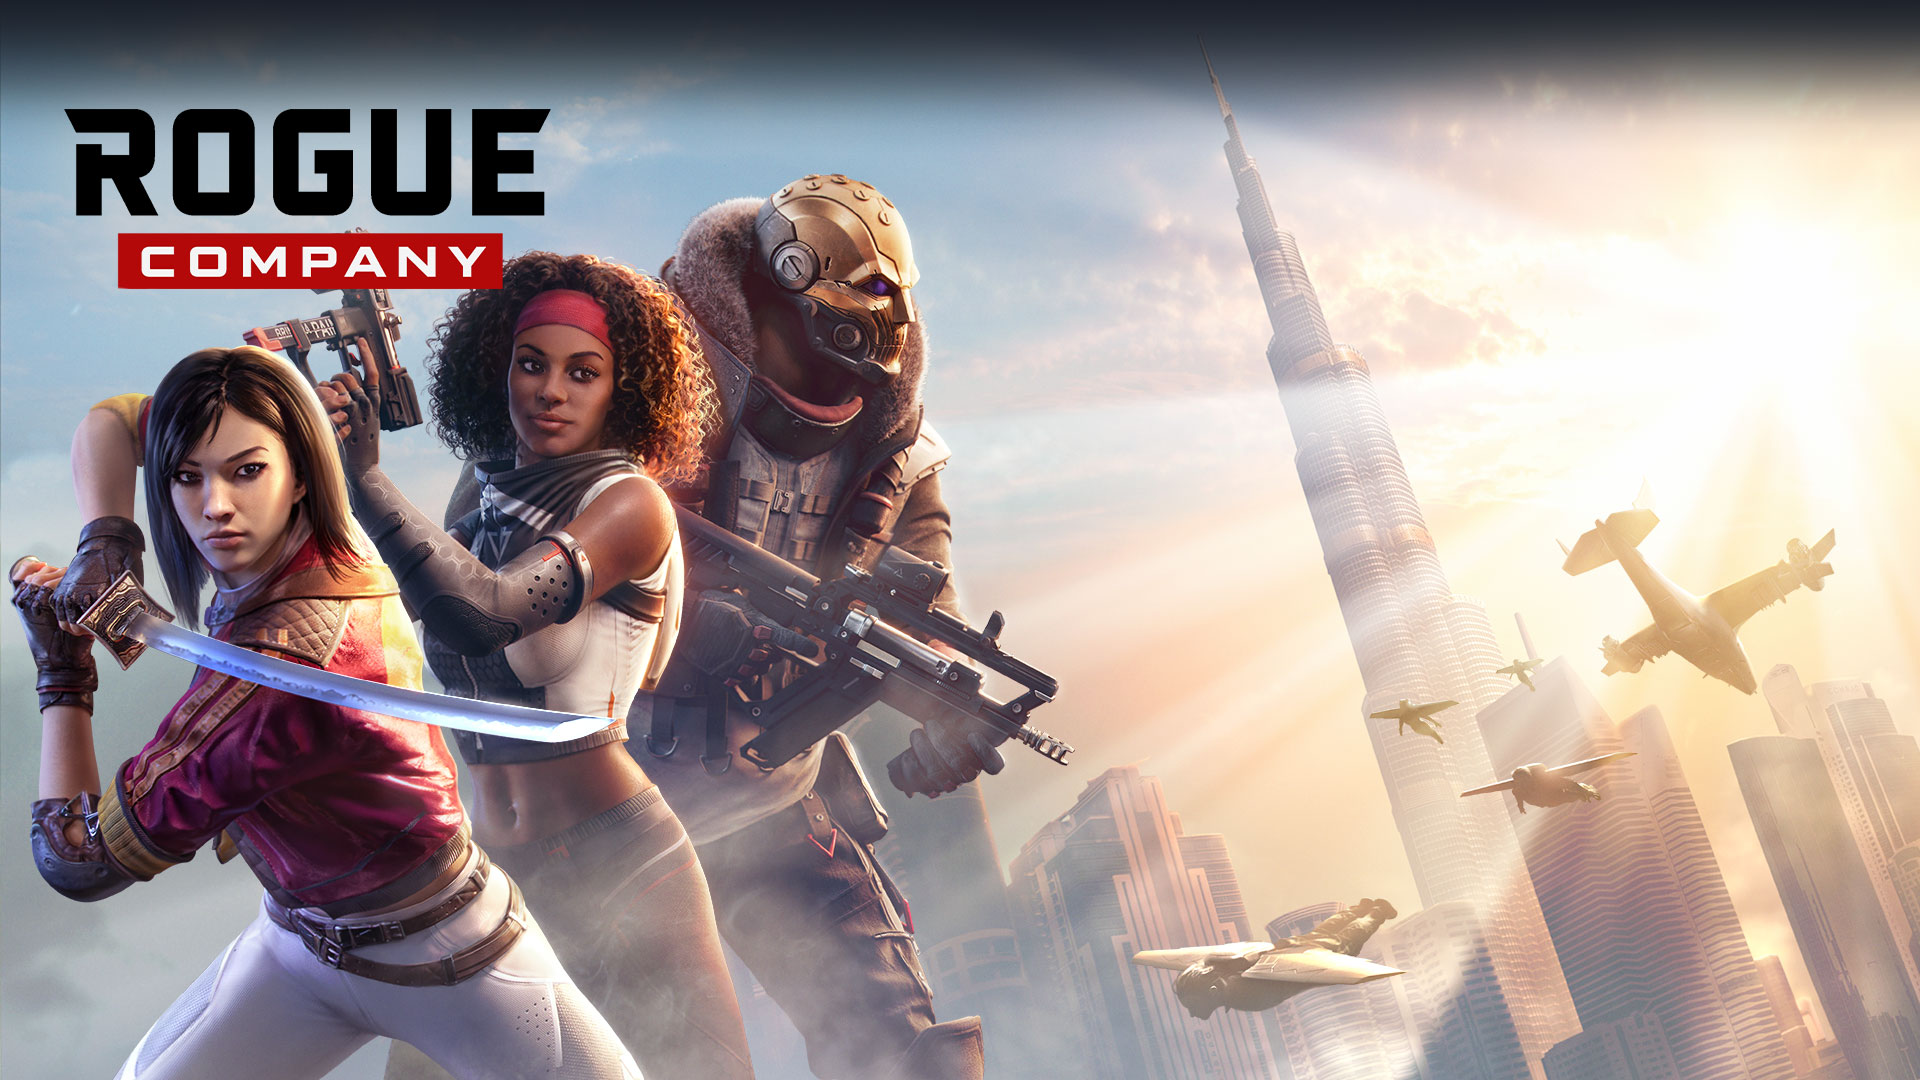 Rogue Company, Three characters hold their weapons at the ready in front of a sunlit cityscape.